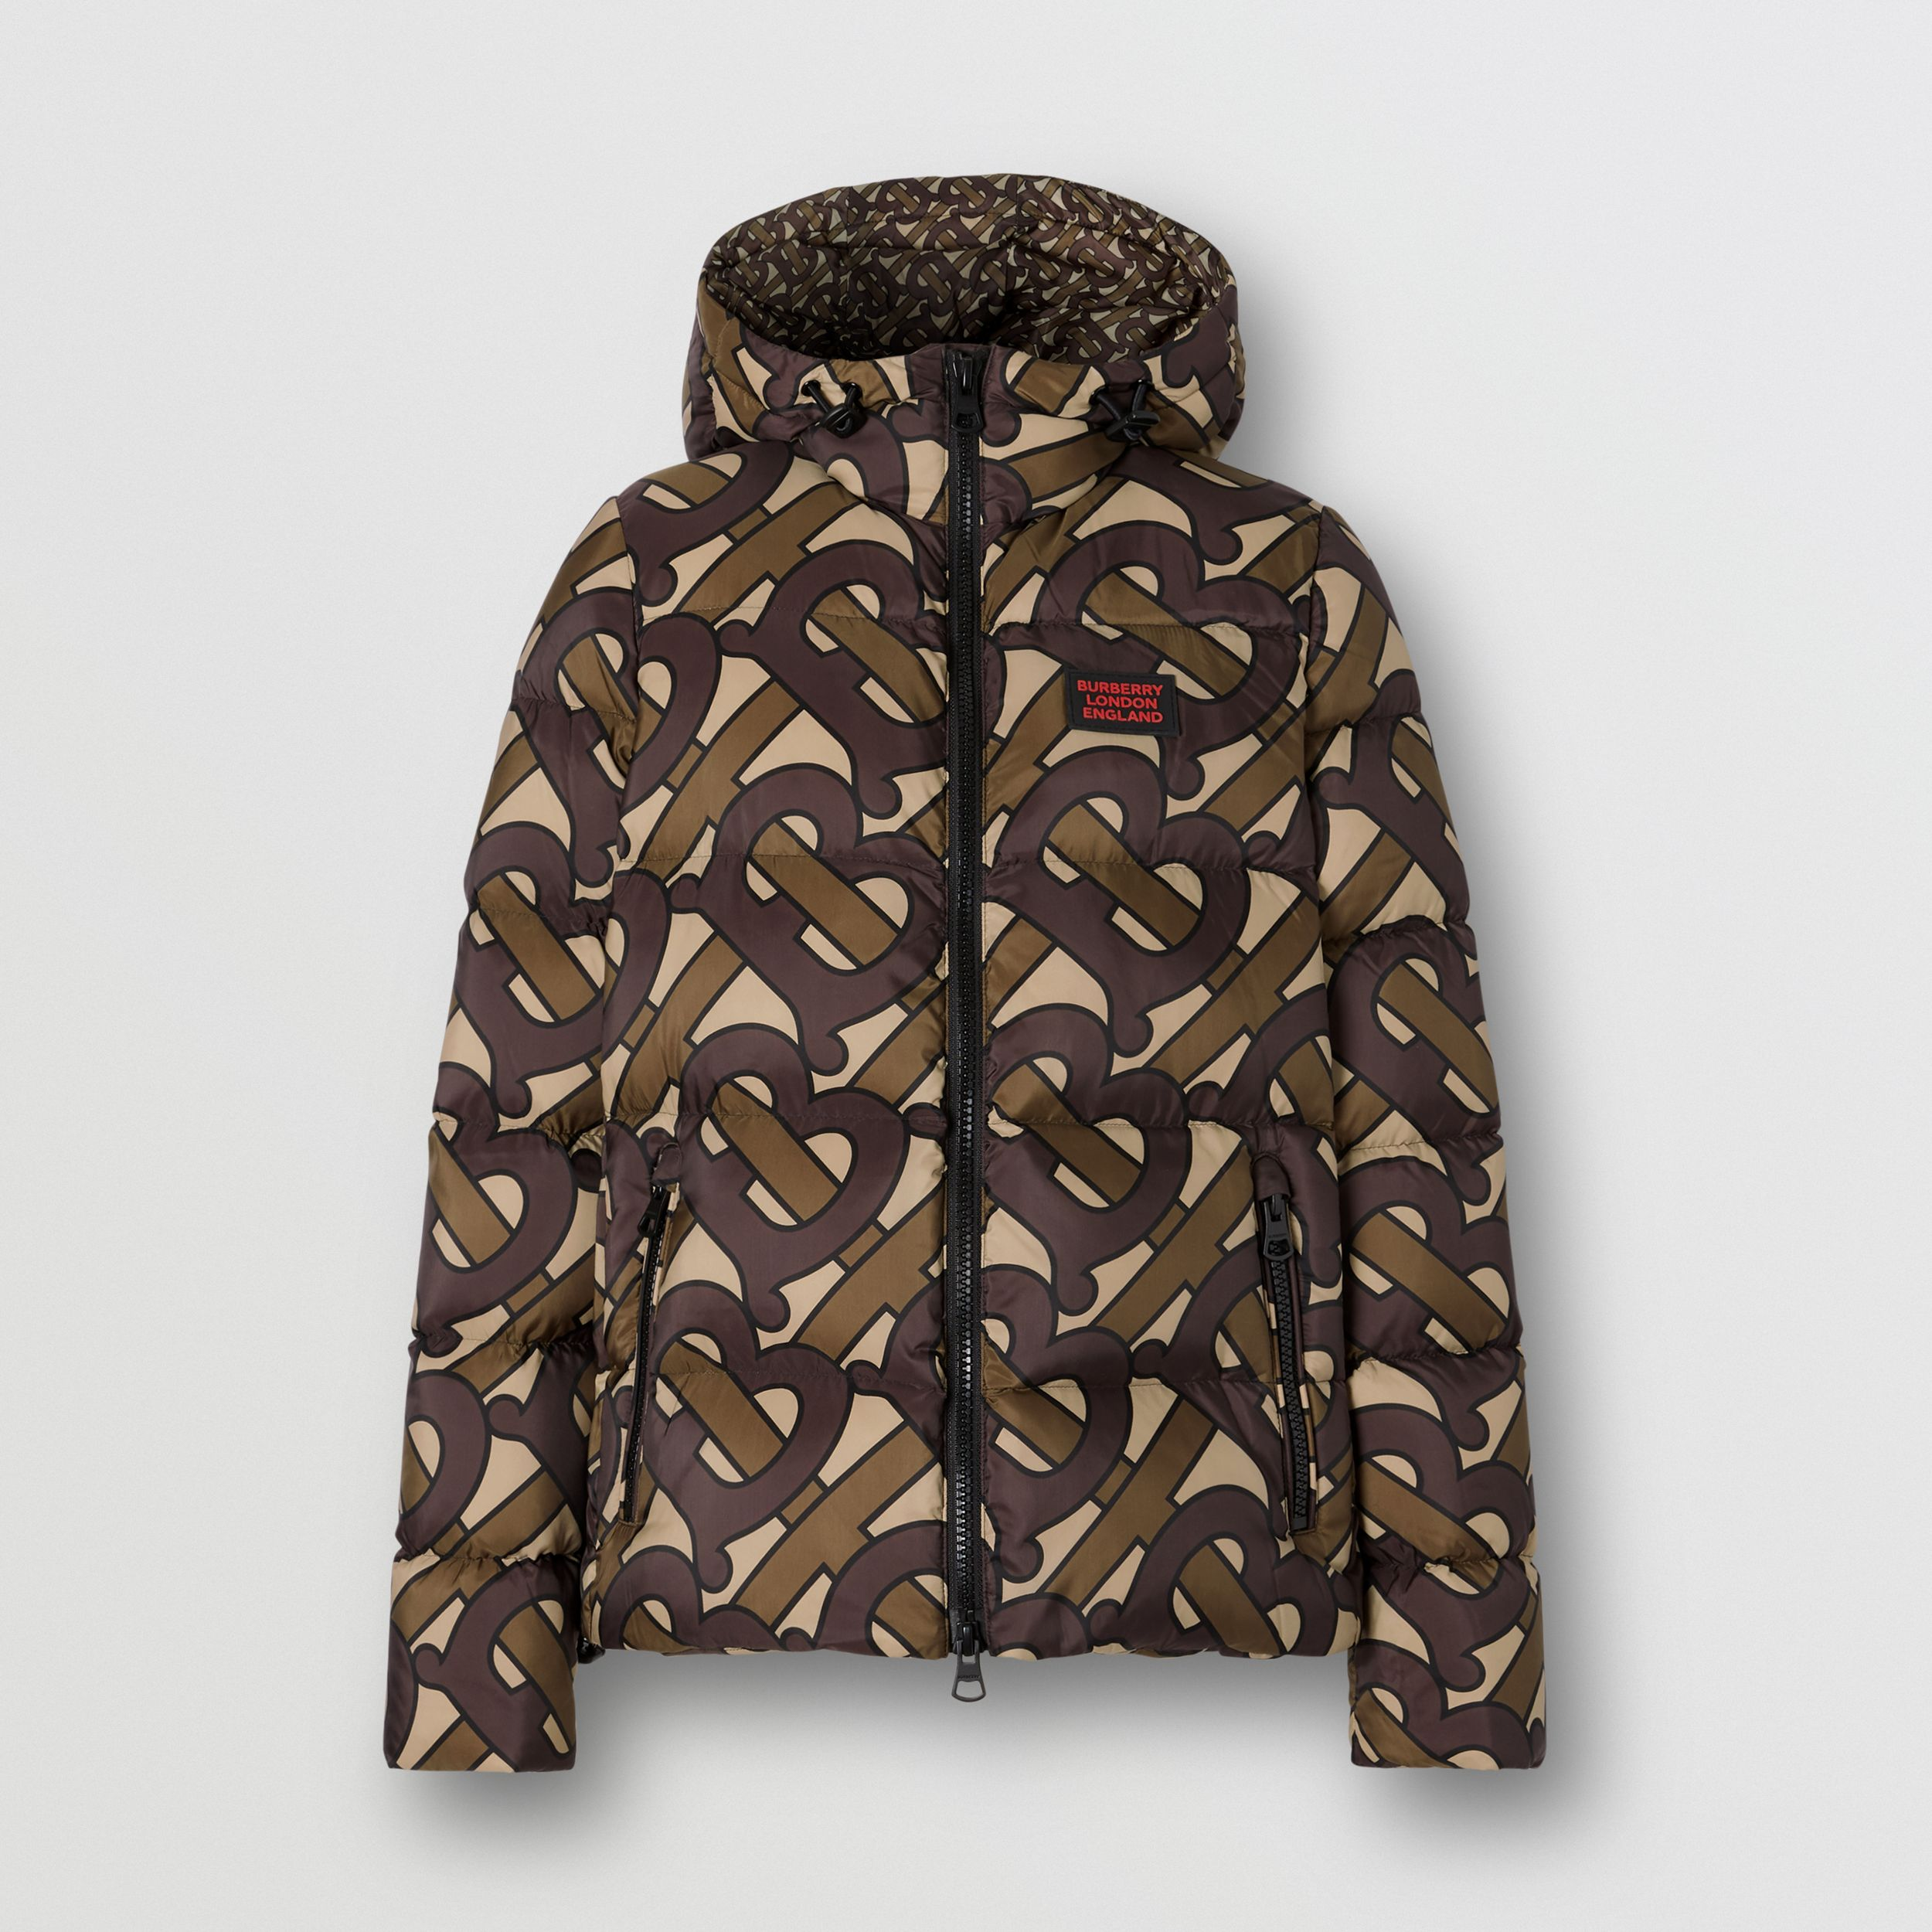 Monogram Print Hooded Puffer Jacket in Bridle Brown - Women | Burberry Canada - 4